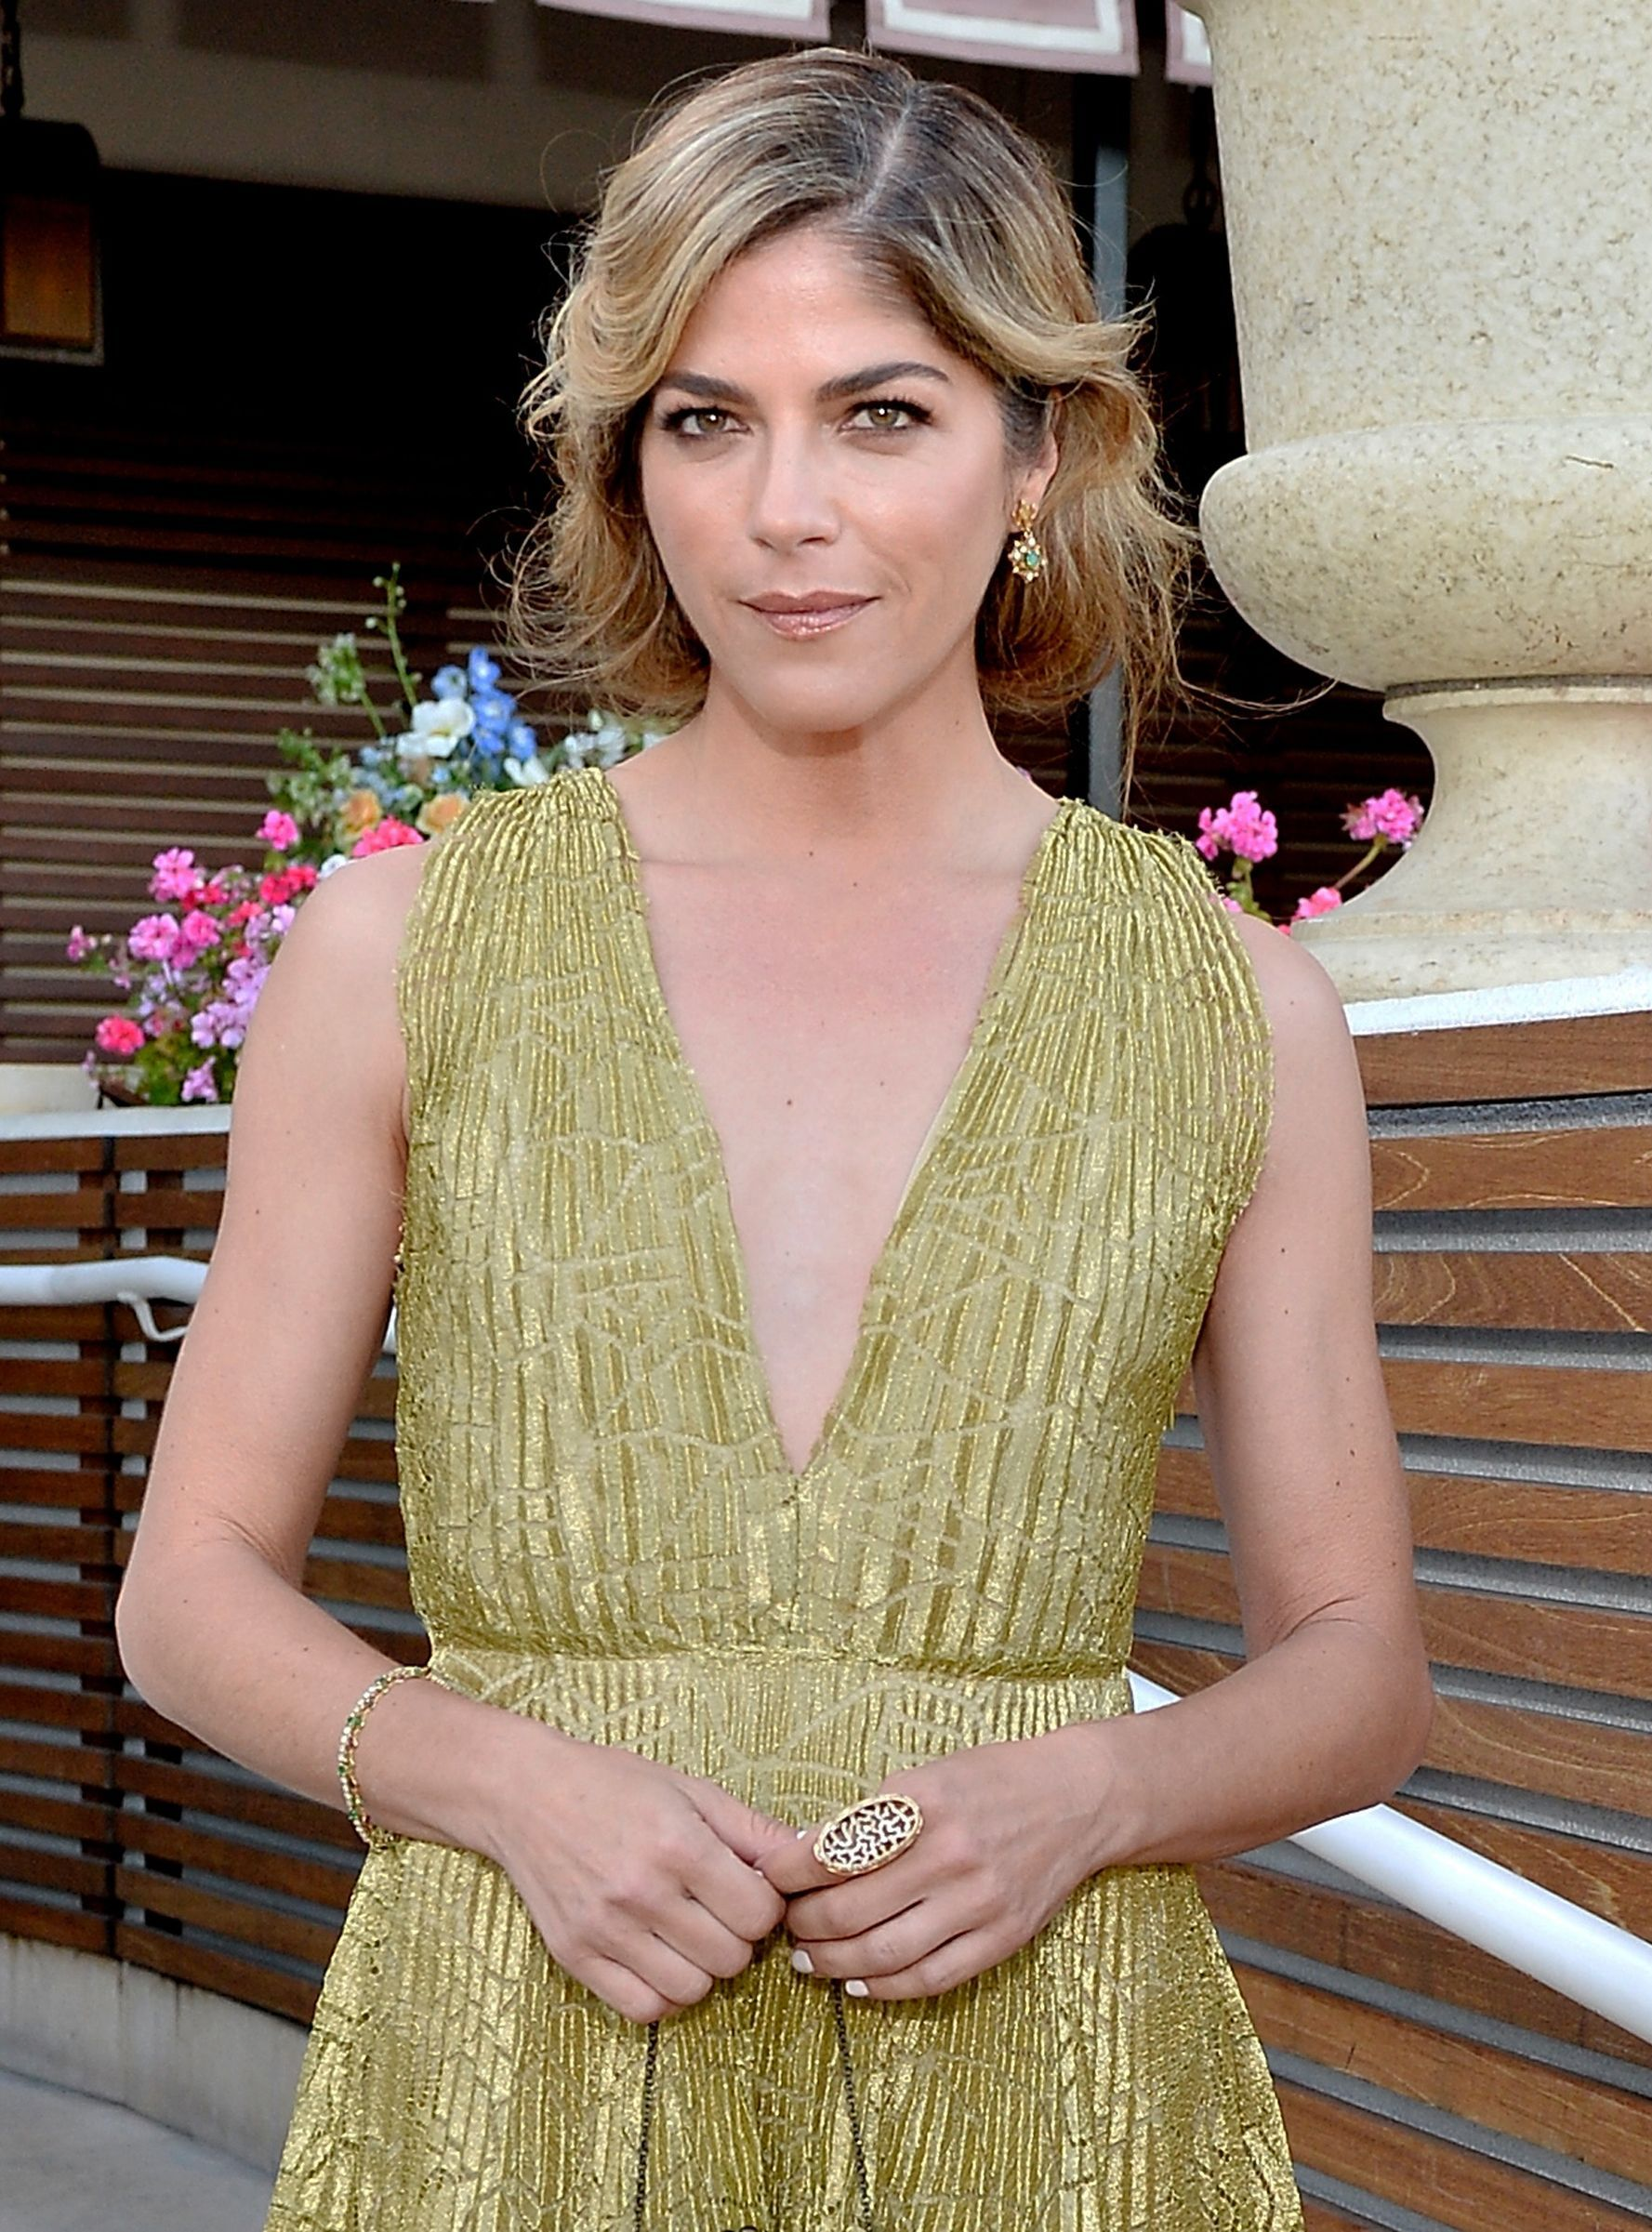 Selma Blair Reveals Ms Diagnosis After Years Of Not Being Taken Seriously Selma Blair Selma Multiple Sclerosis